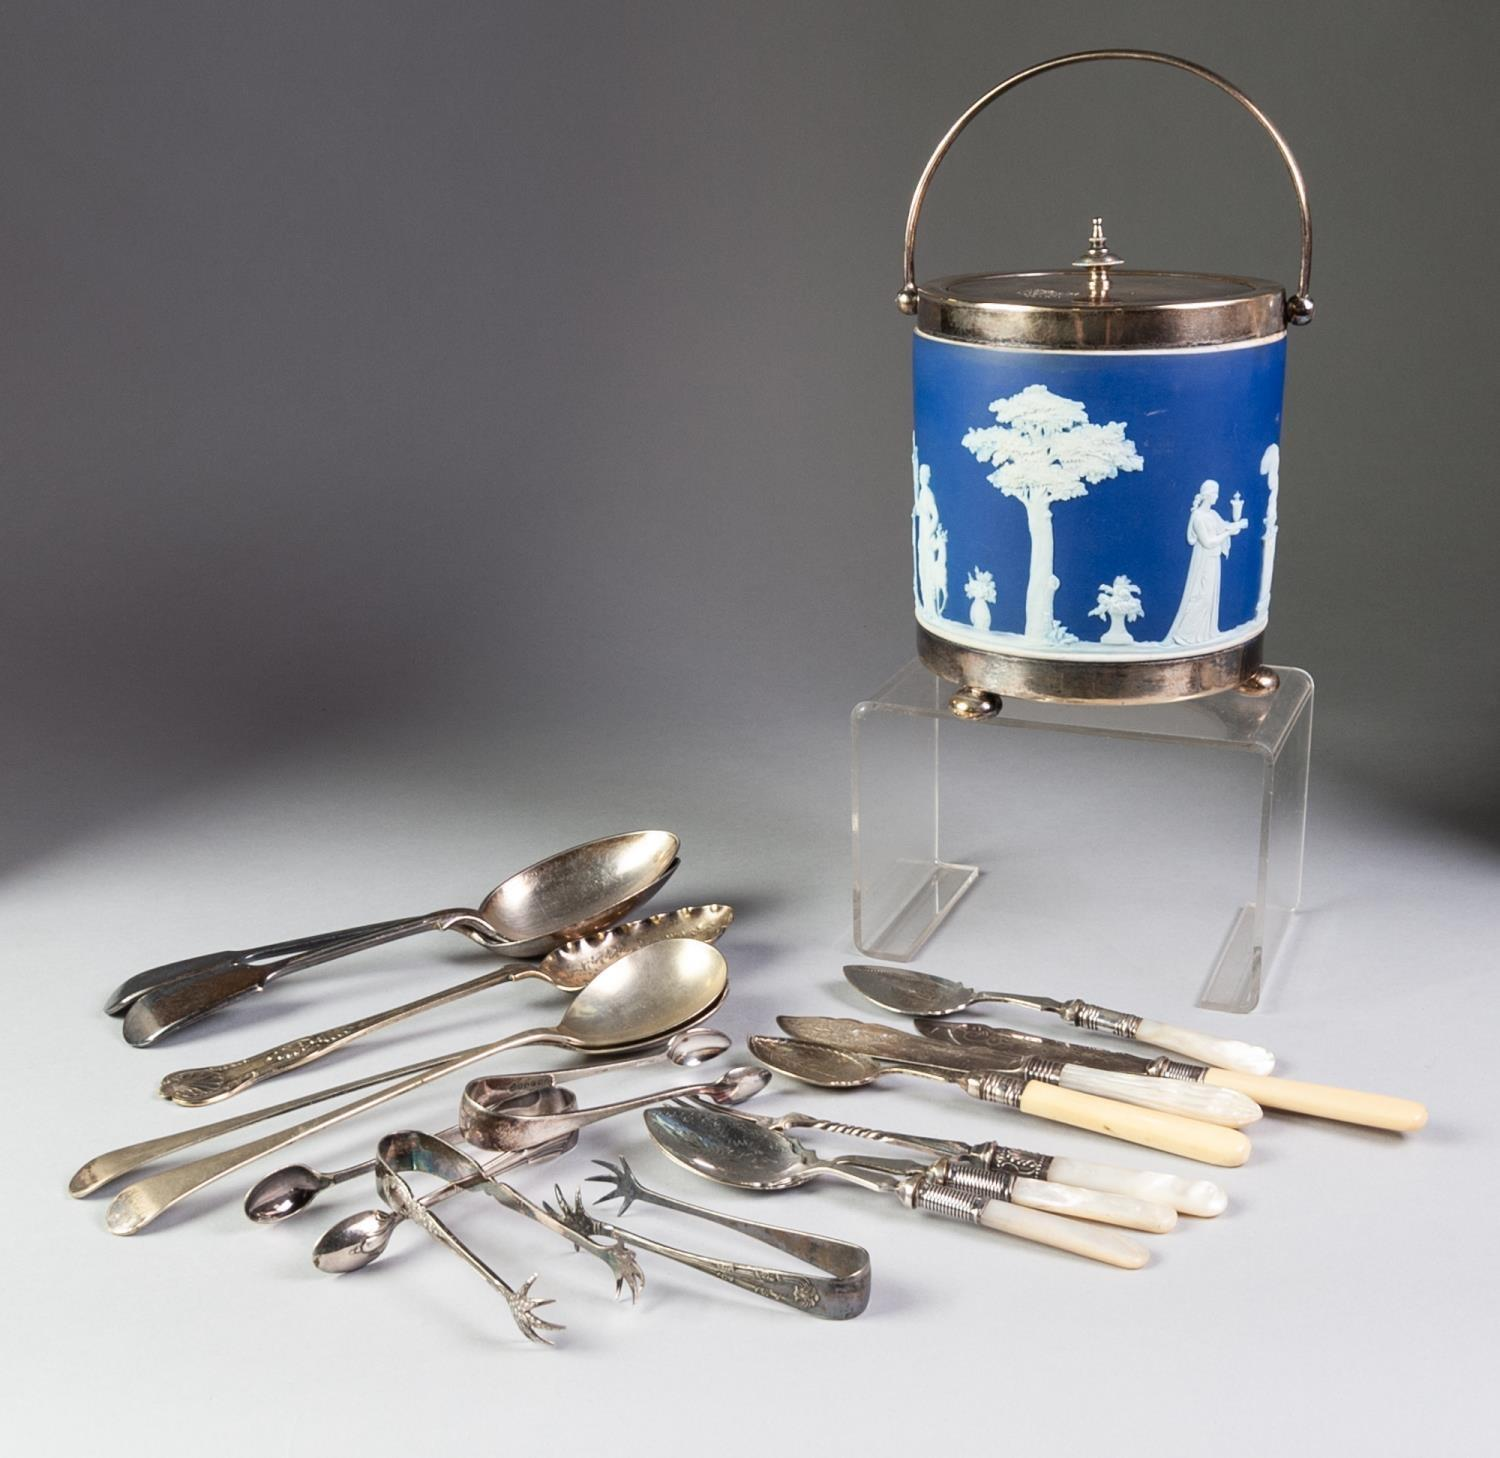 Lot 396 - WEDGWOOD BLUE AND WHITE JASPERWARE AND ELECTROPLATE BISCUIT BARREL with plated lid swing handle